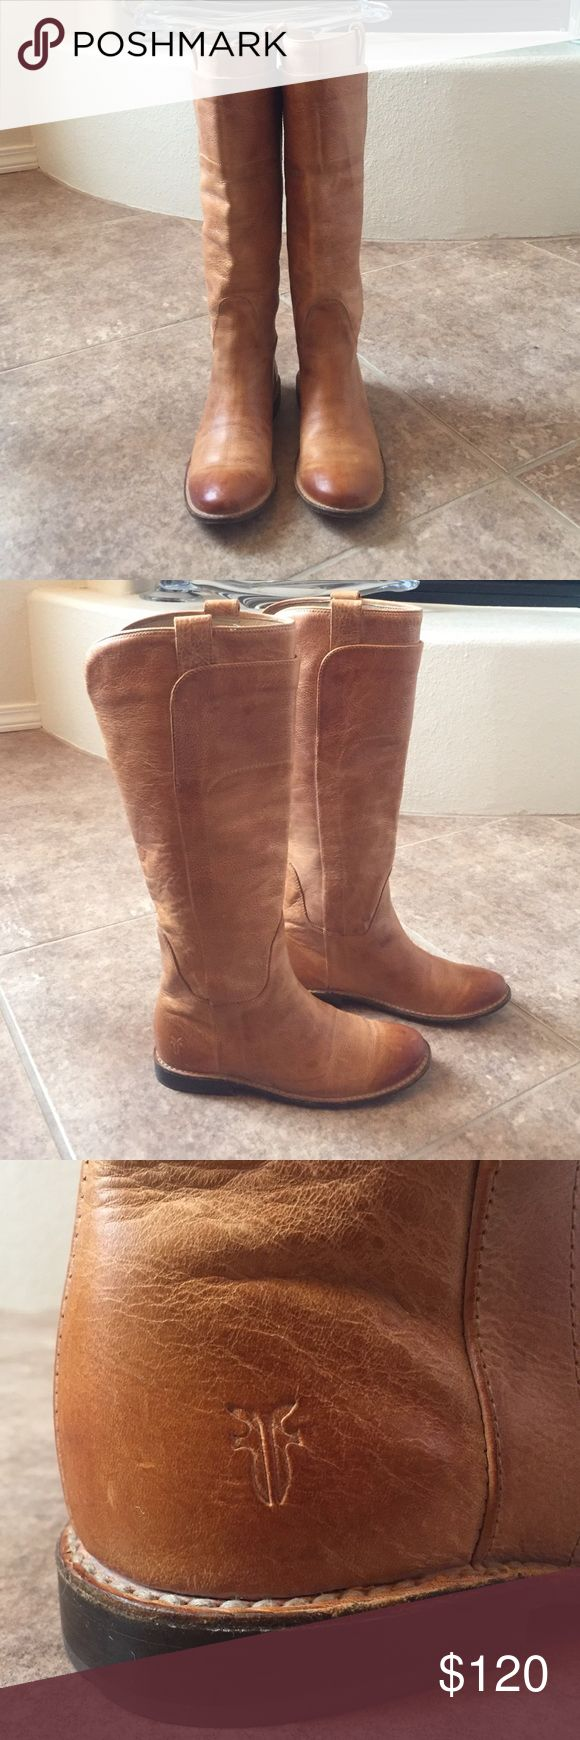 Frye Paige Tall Riding Boots I bought these used, and they're in excellent used condition, but they're too big for me. 😢 They're beautiful and still smell like leather. Frye Shoes